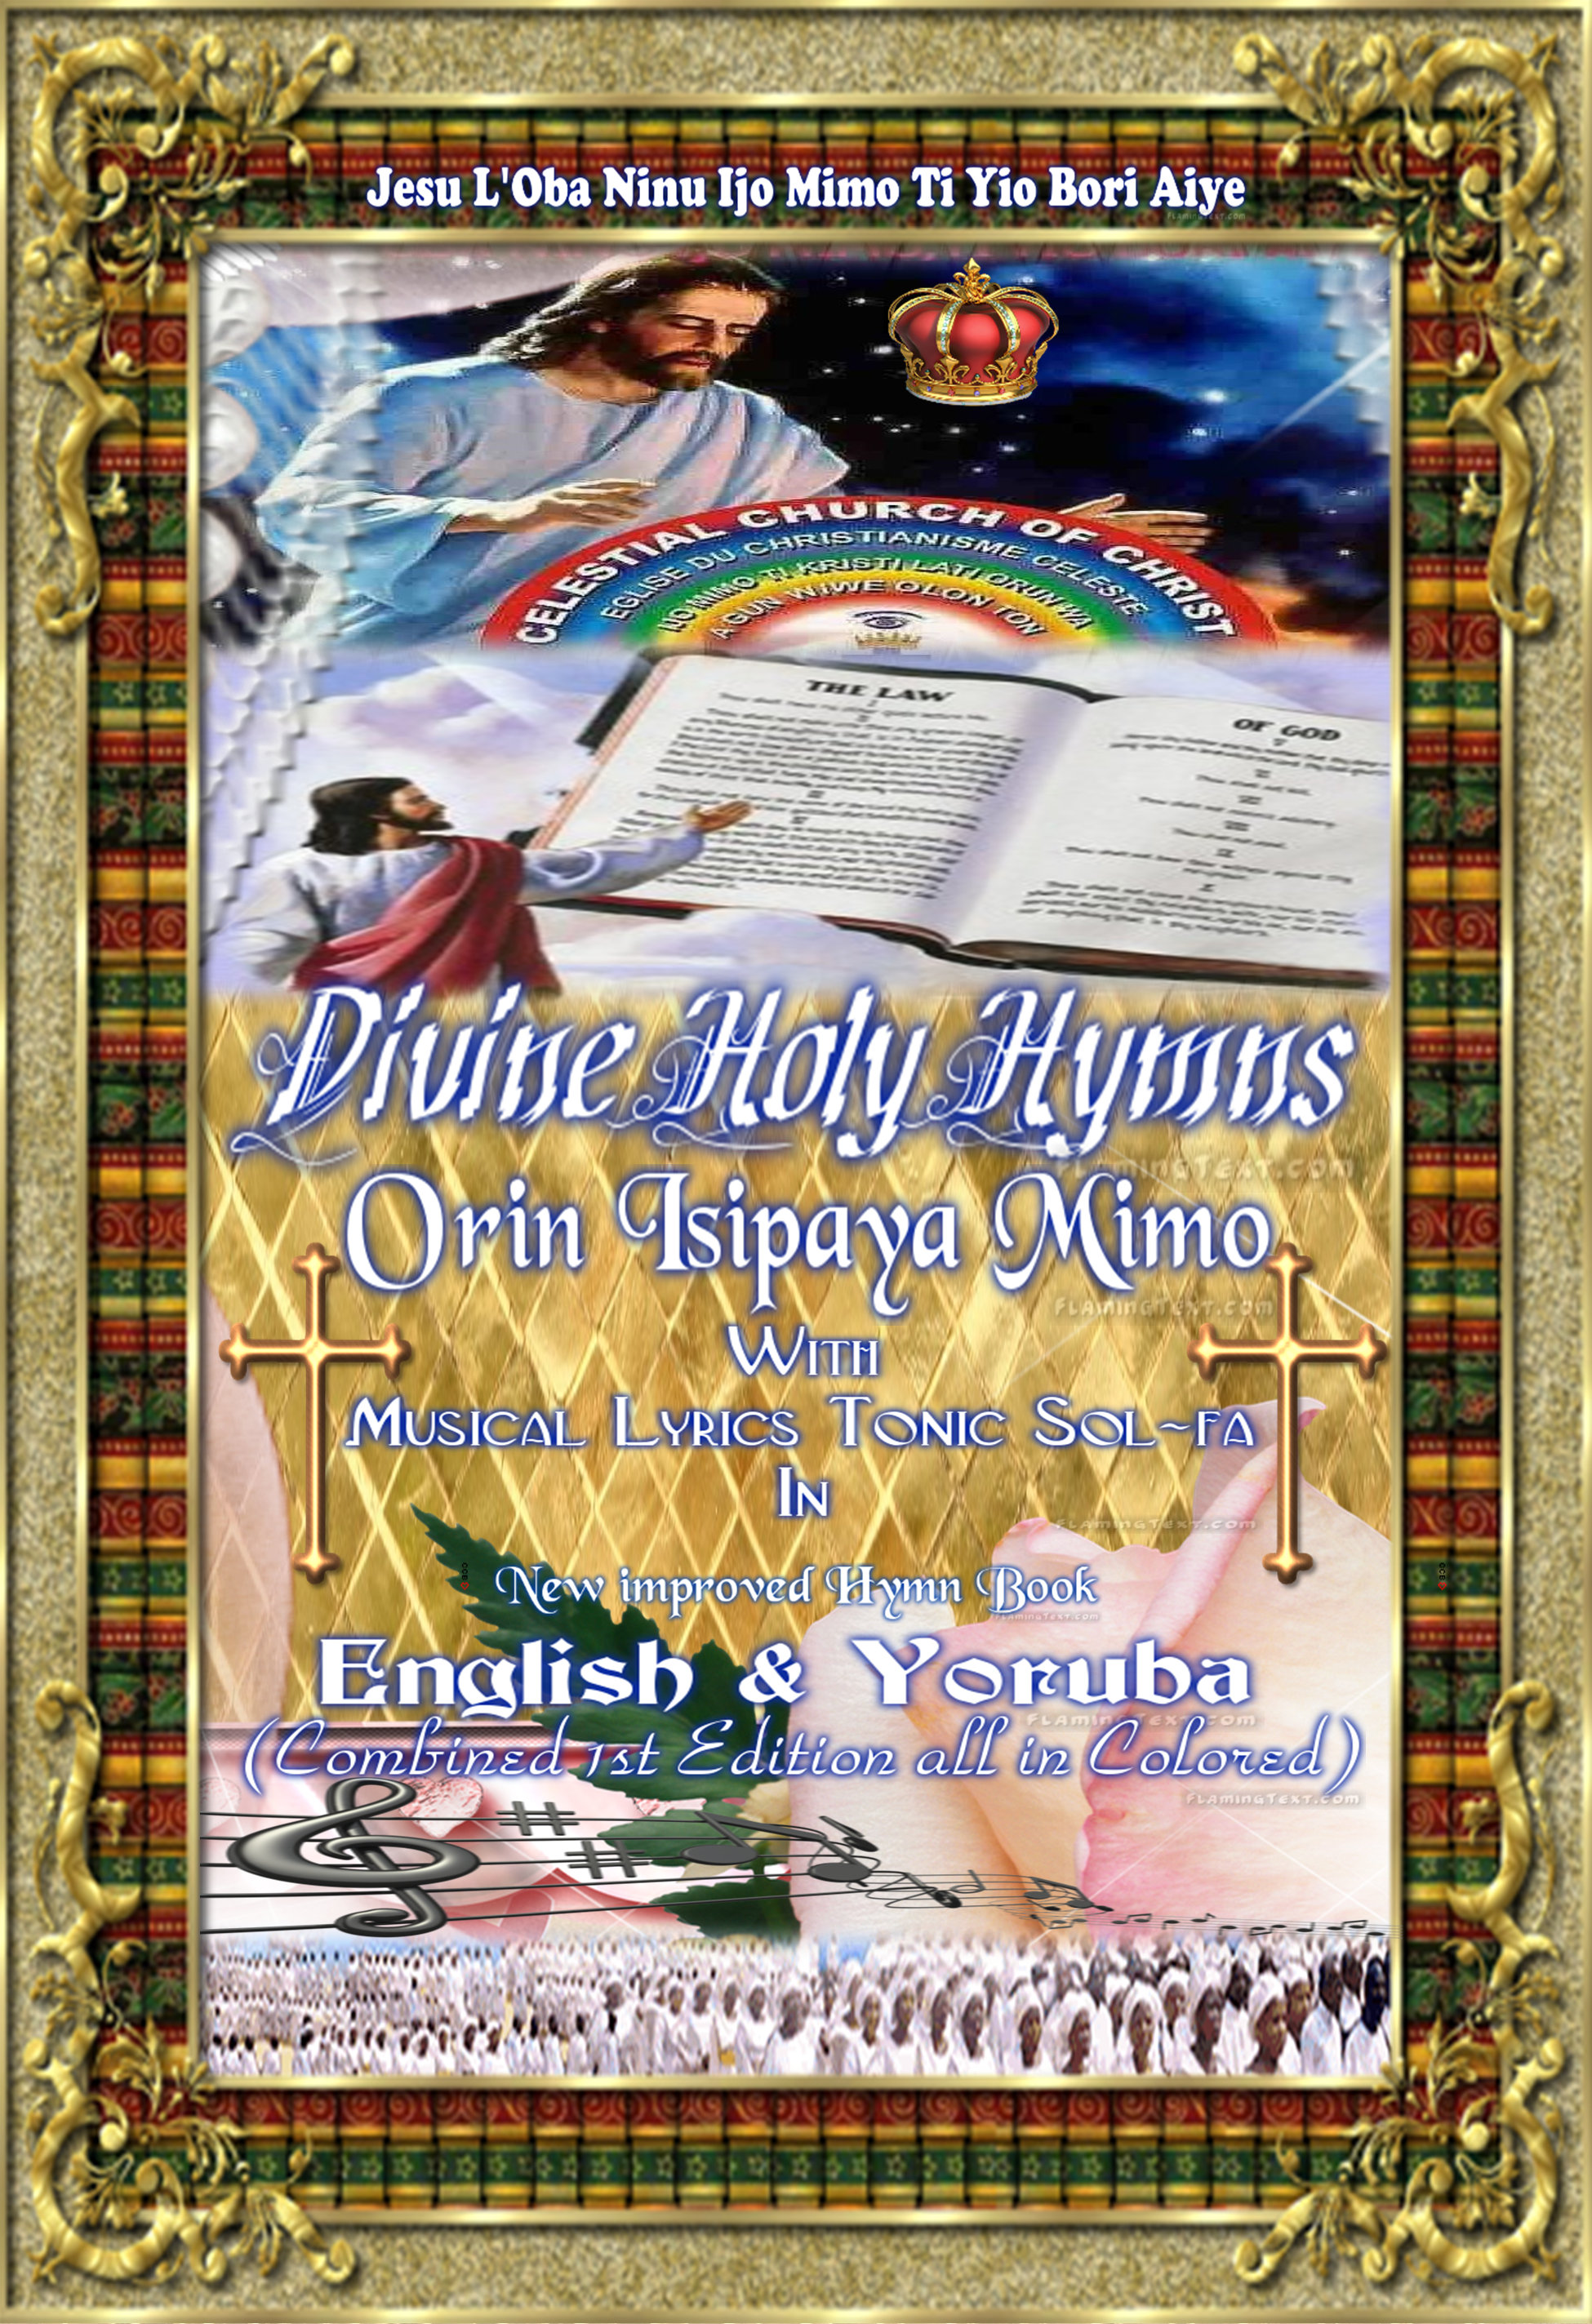 Celestial church of christ select the above front cover for highlights of this historical hymn book and compares with other hymn books in existence stopboris Images